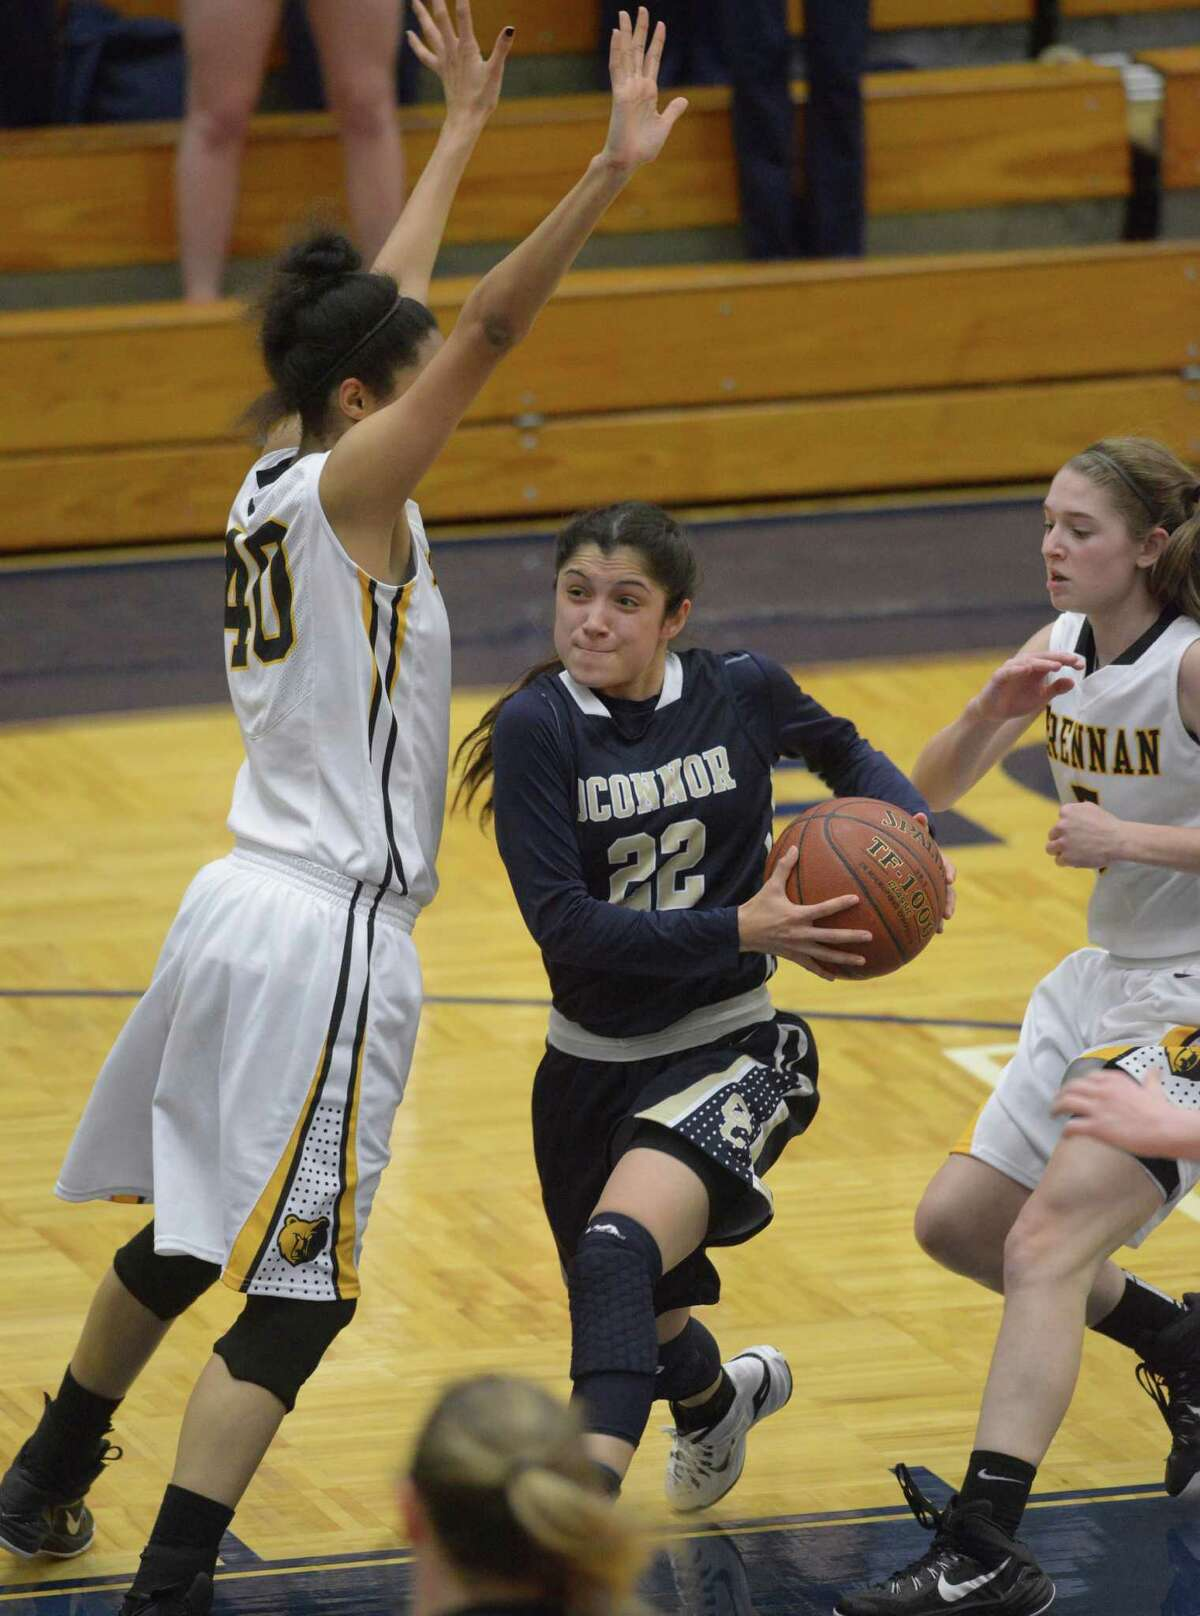 Amber Vidal of O'Connor drives between Monique Terry (left) and Kinzie Heineman (right) of Brennan.